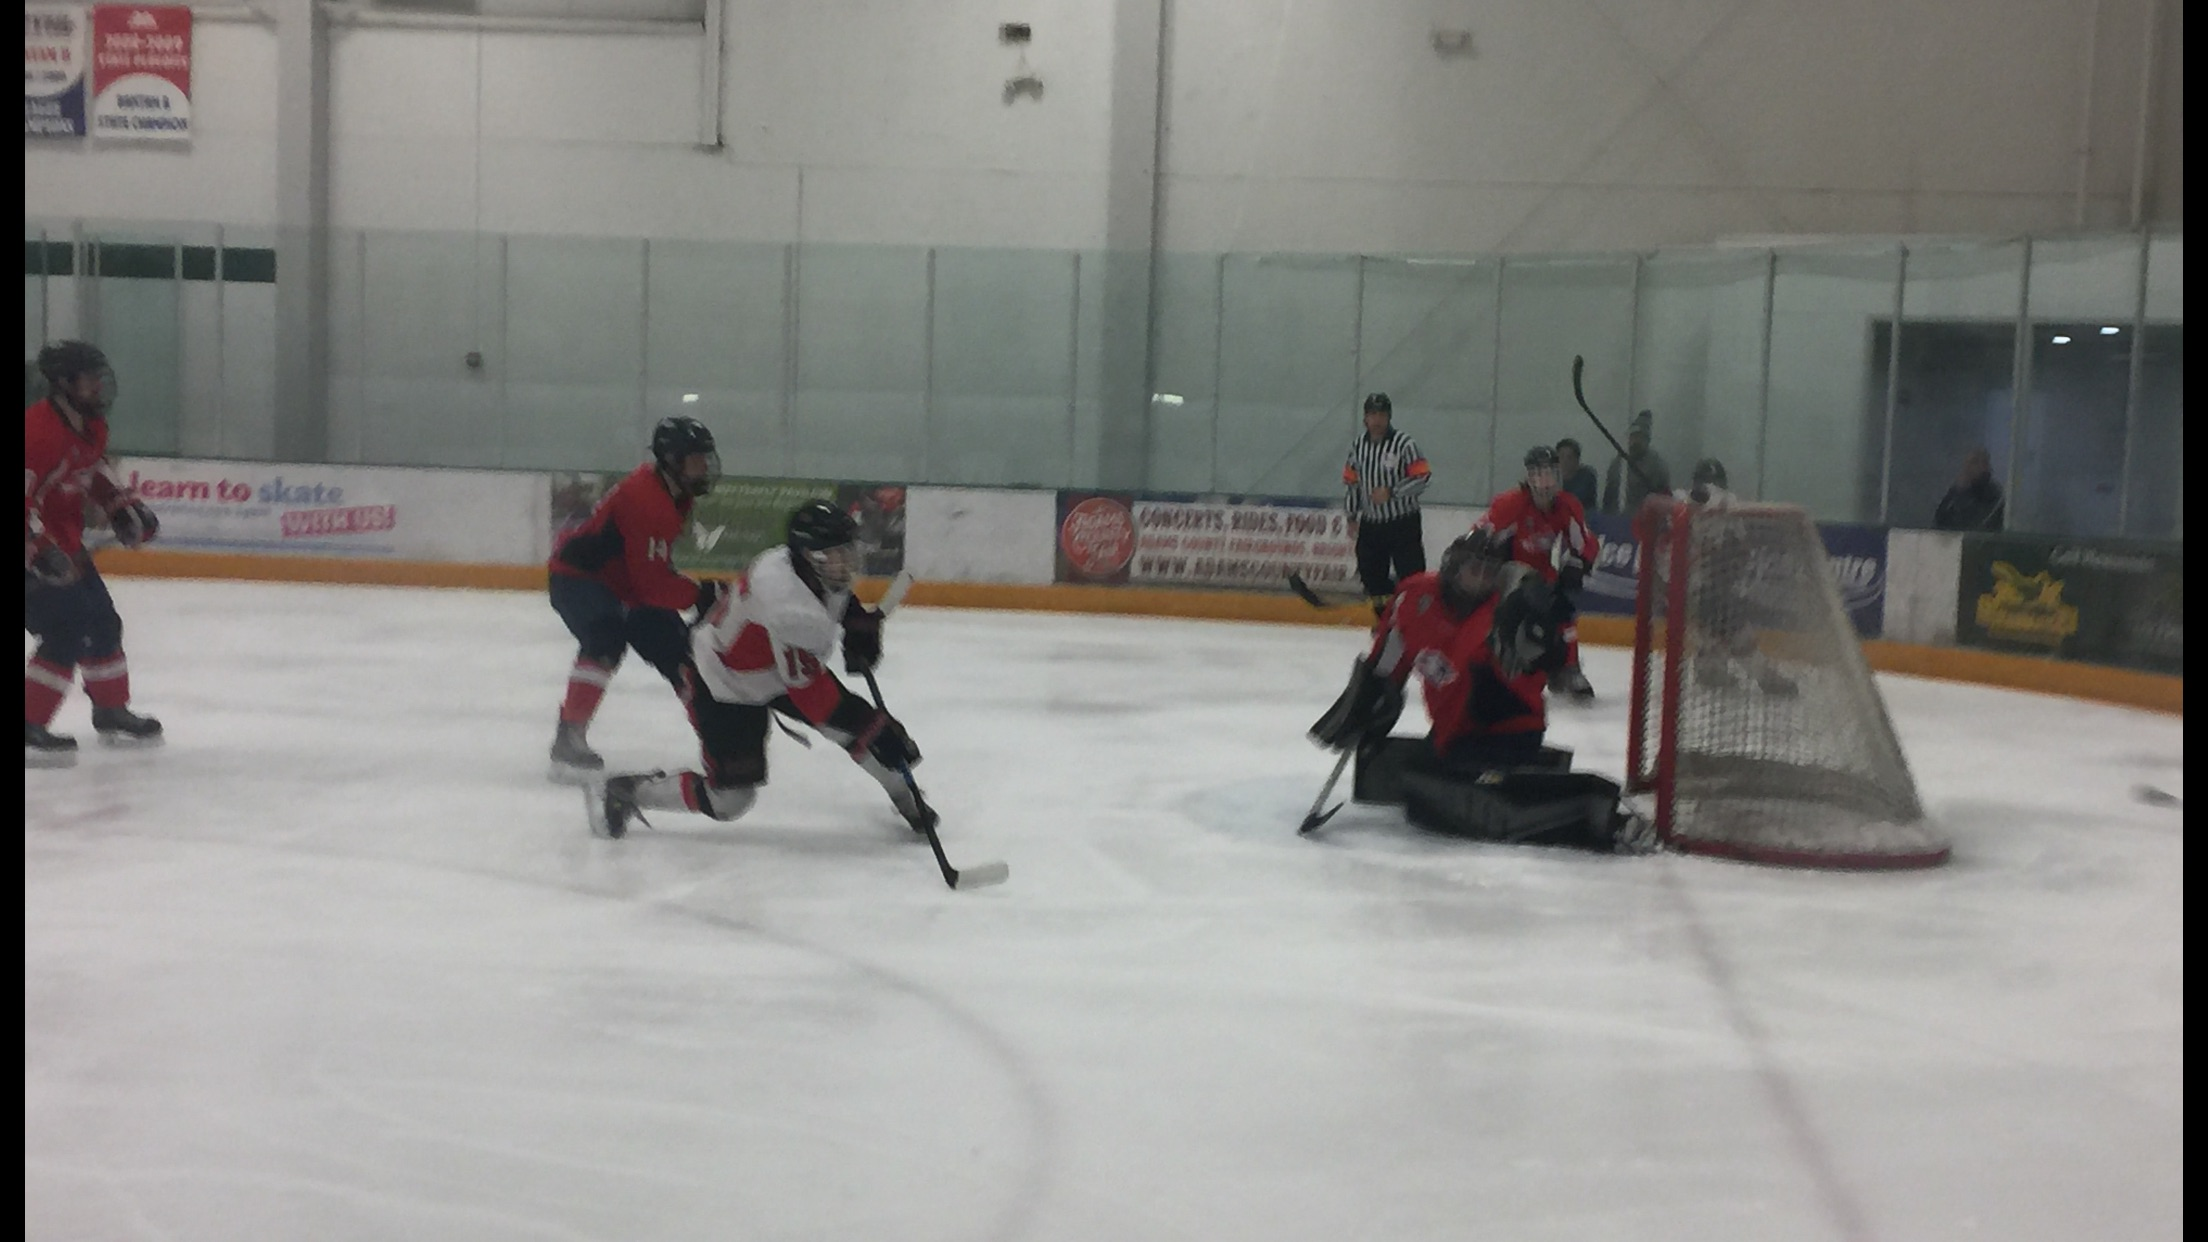 Quentin Abaya (15) gets a shot on goal but clanked off the pipe denying the Matadors a goal and the lead Thursday afternoon at the Ice Centre at the Promenade in Westminster, CO. Photo credit: Solomon Ladvienka